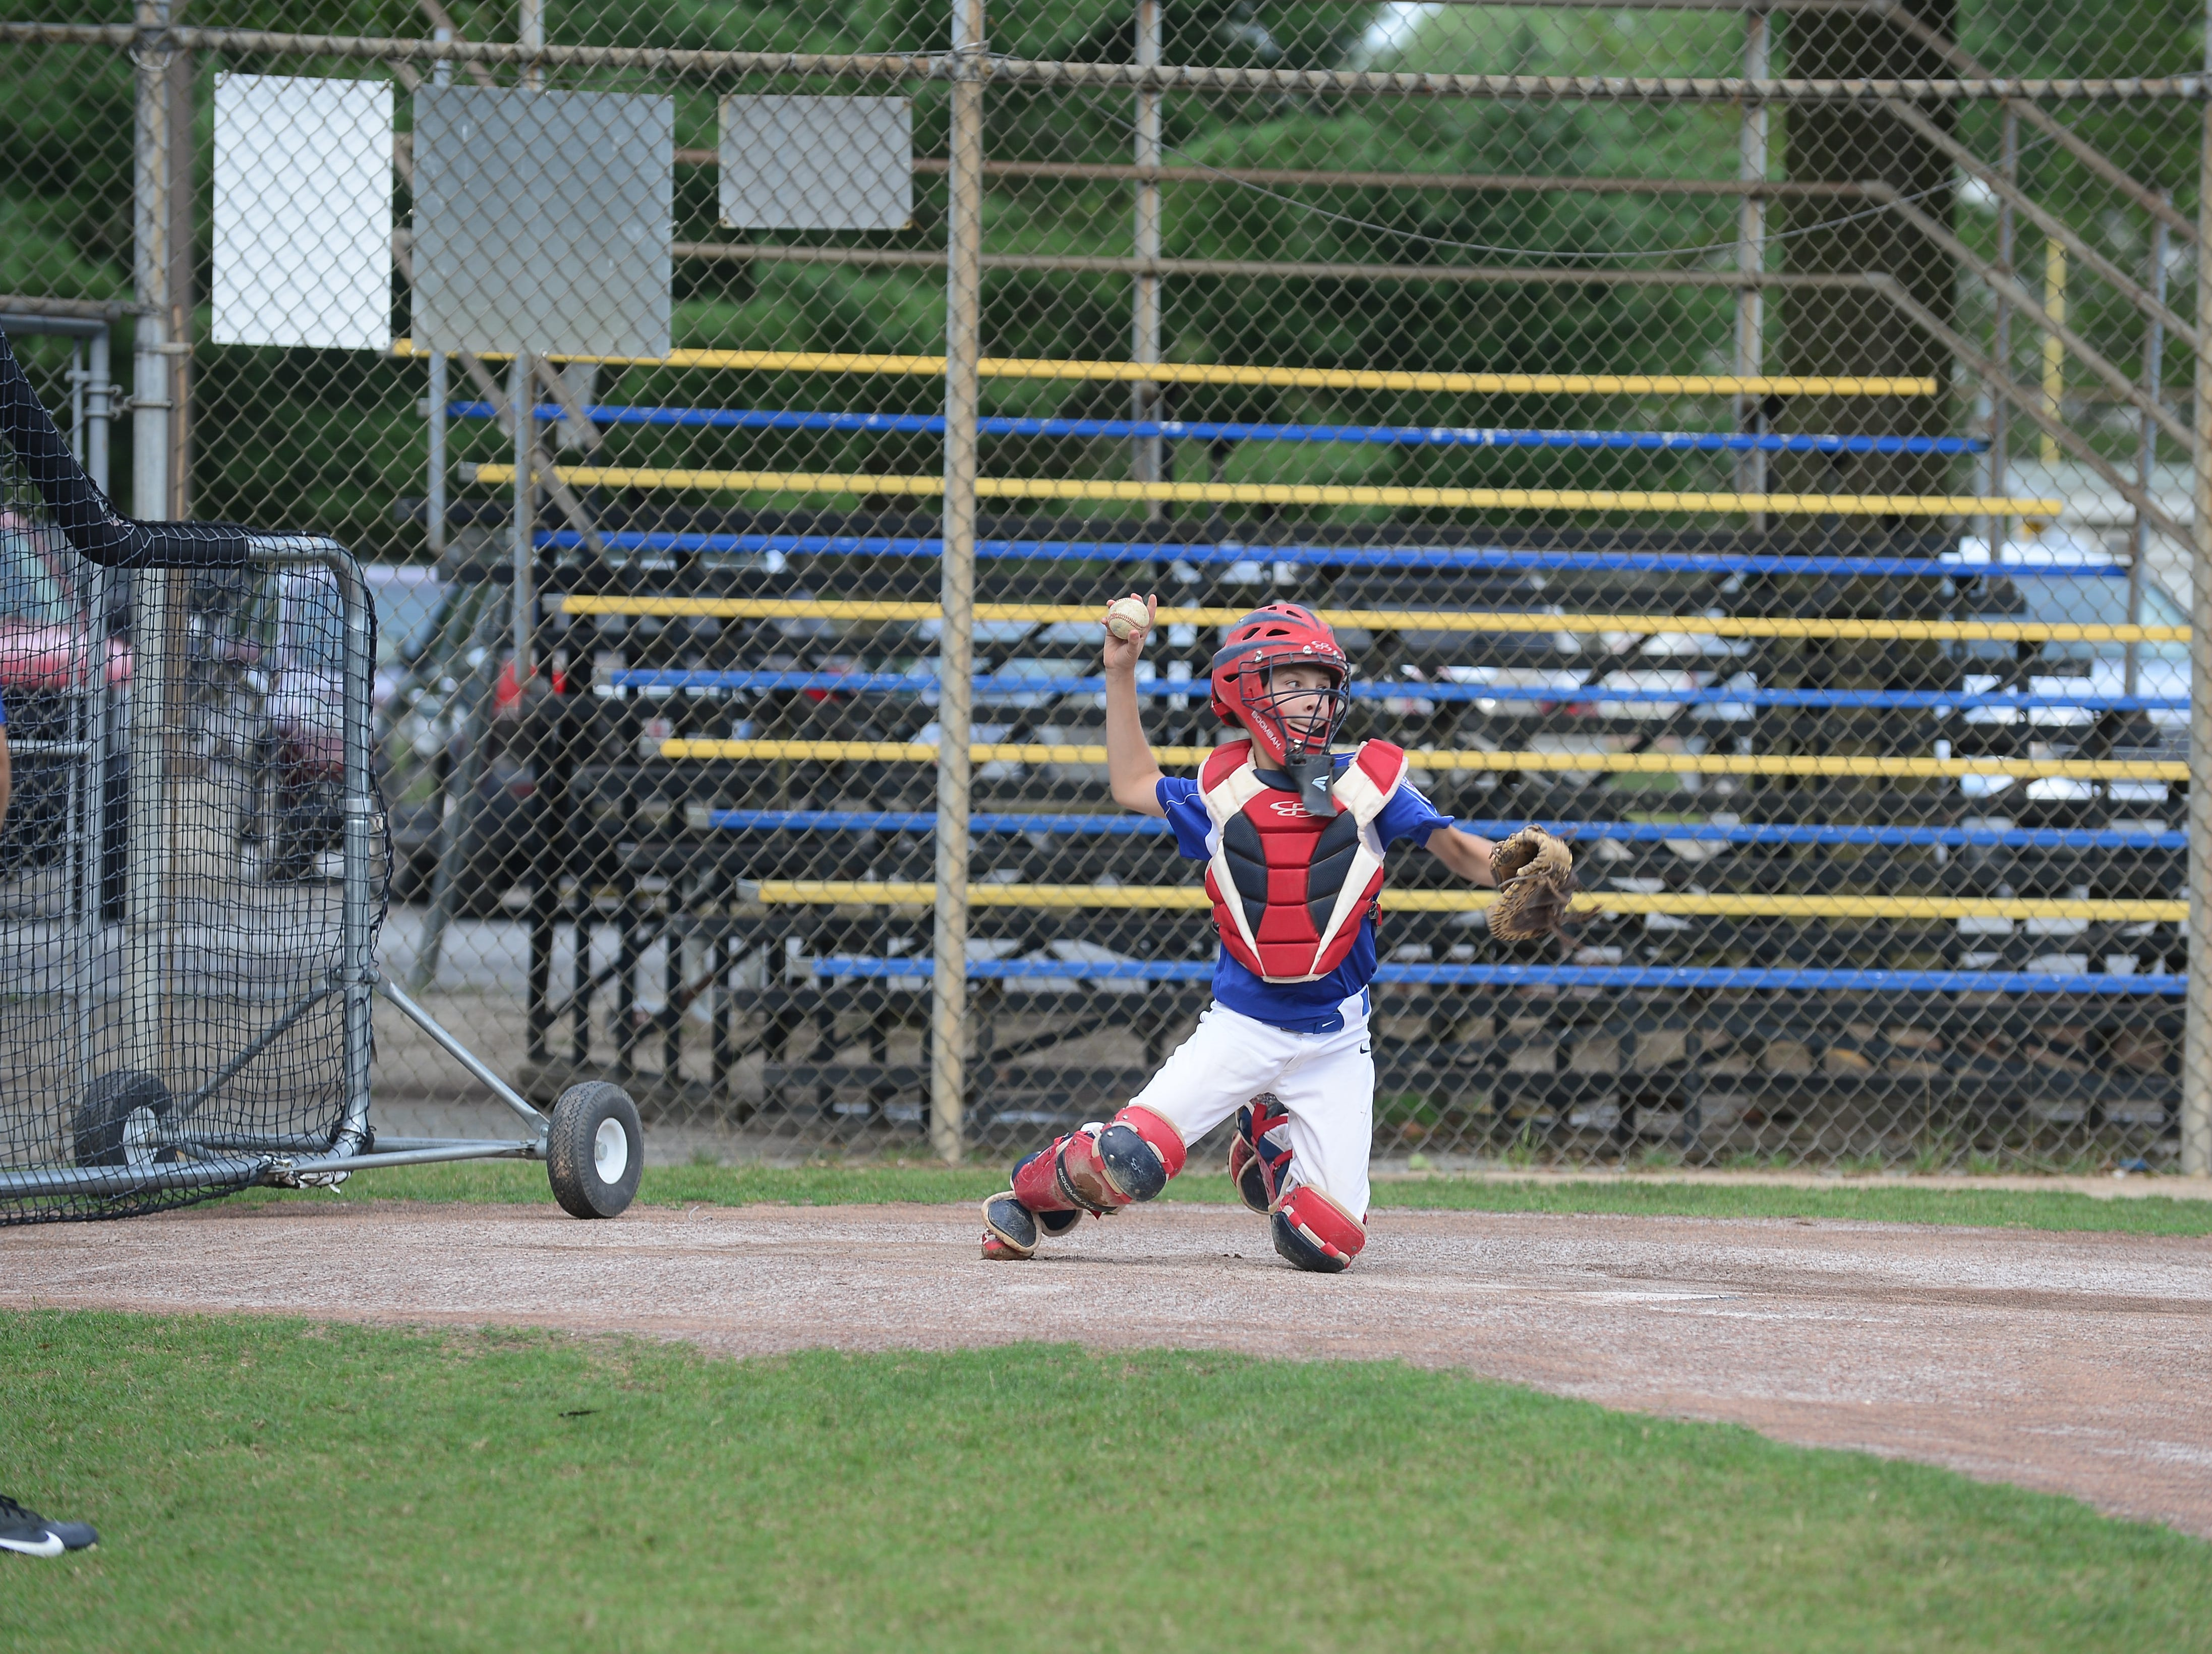 Cole Miles, a member of the Fruitland Little League 11U team, works behind the plate during practice on Tuesday, July 24, 2018.